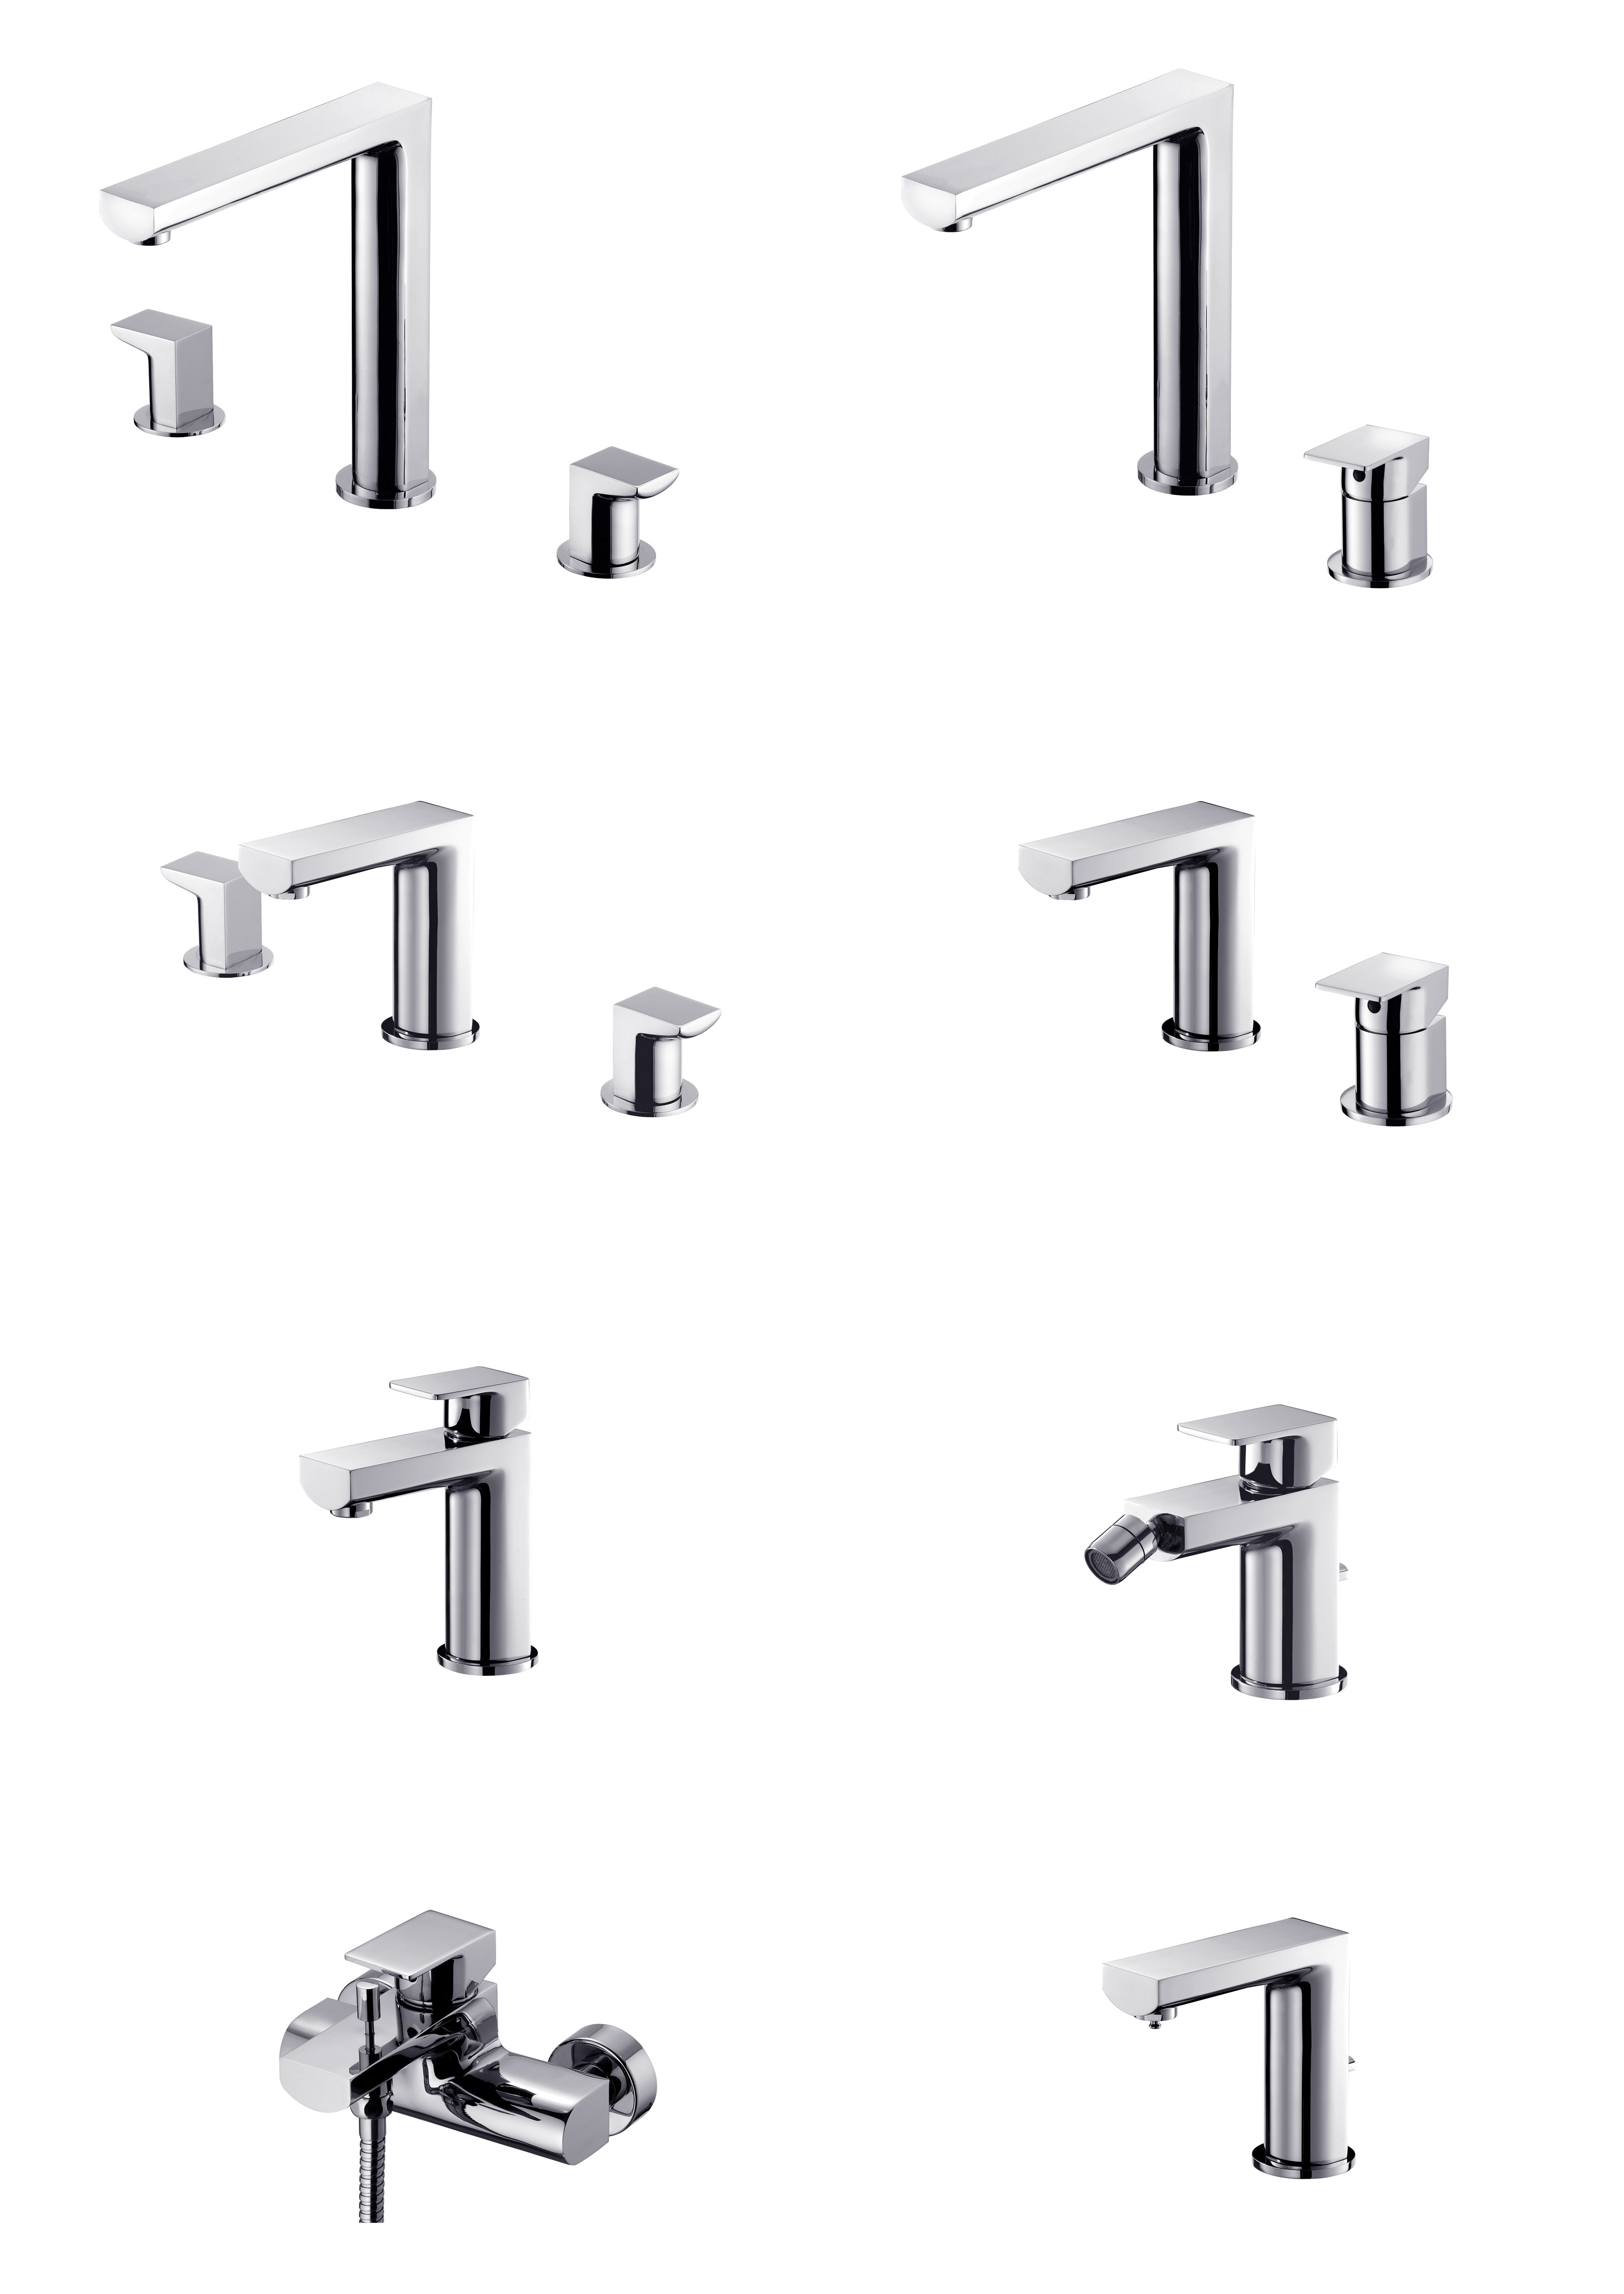 ARCH Series Faucet